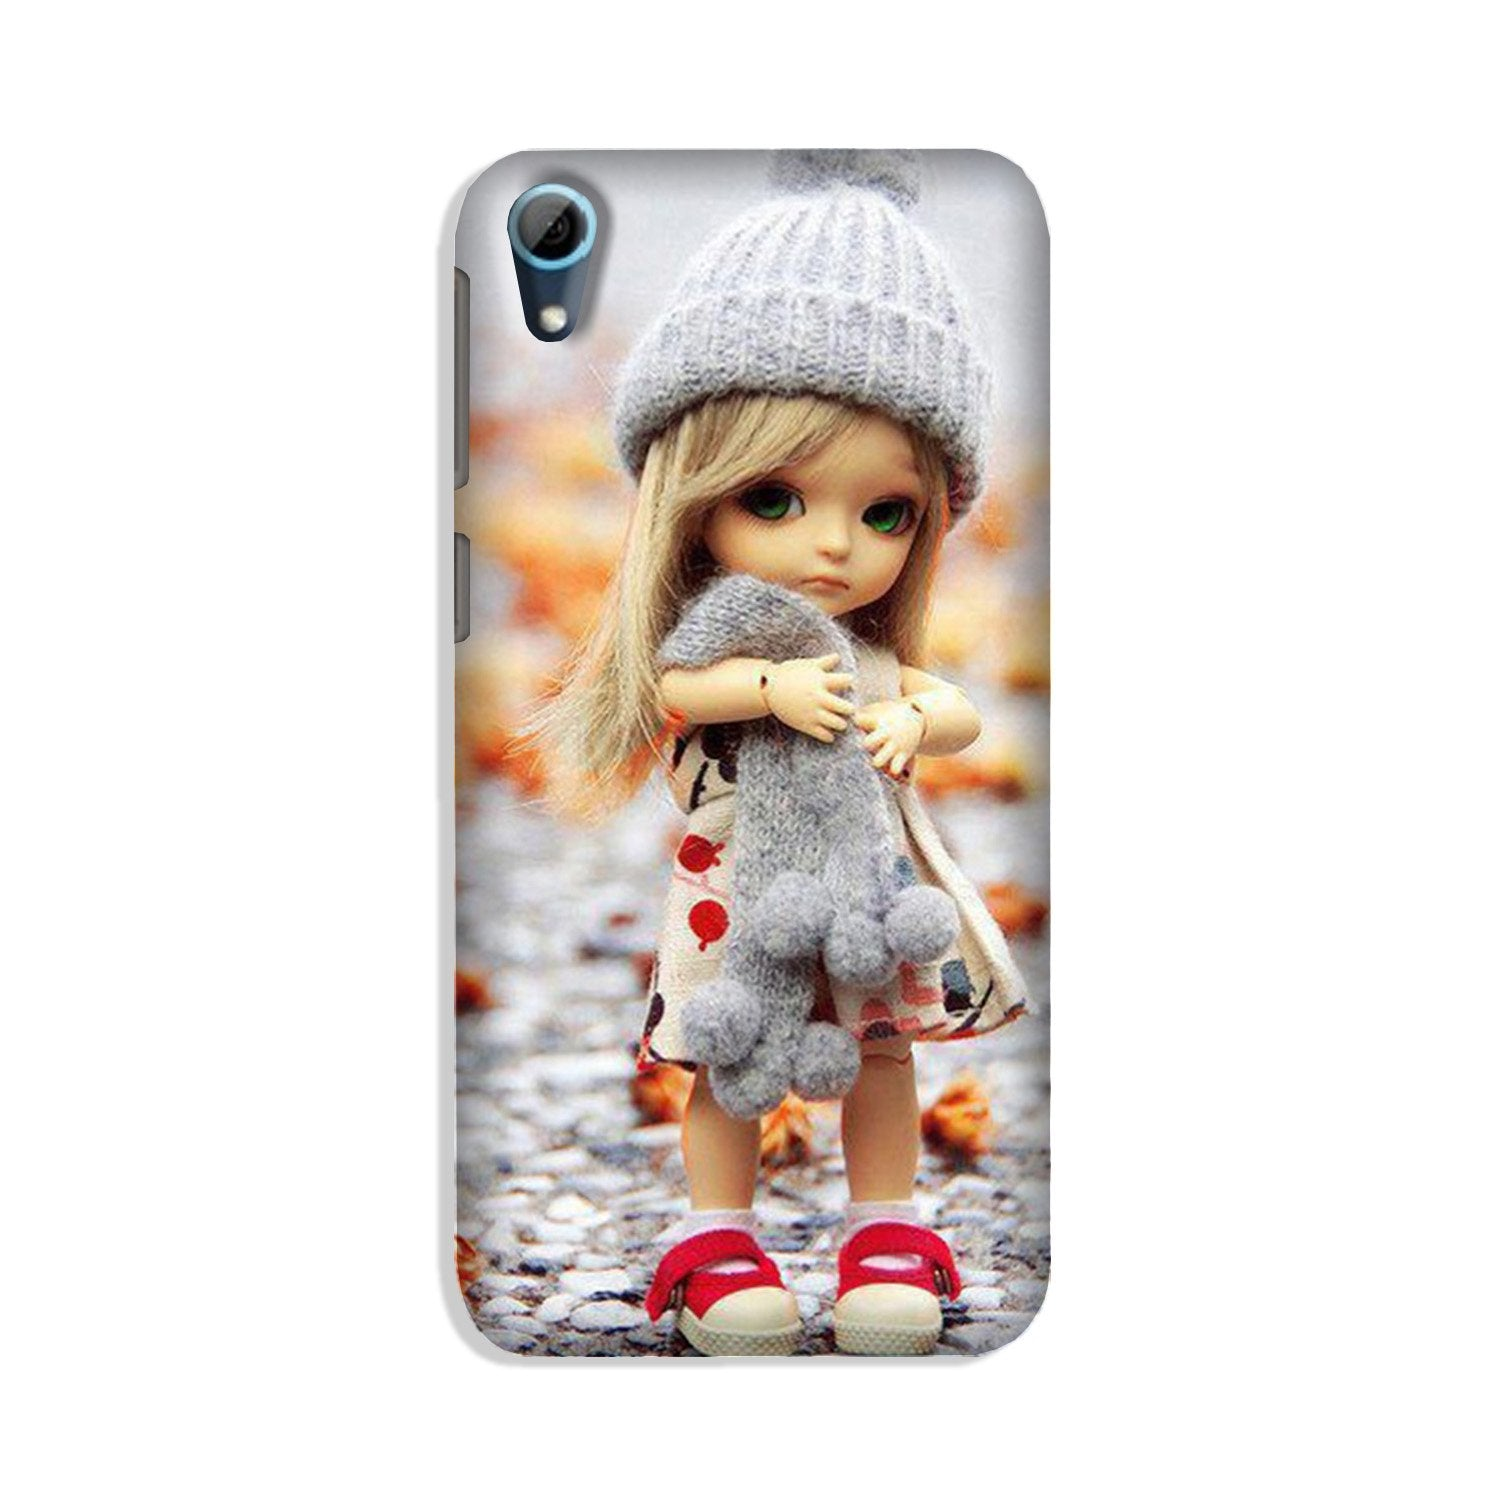 Cute Doll Case for HTC Desire 826